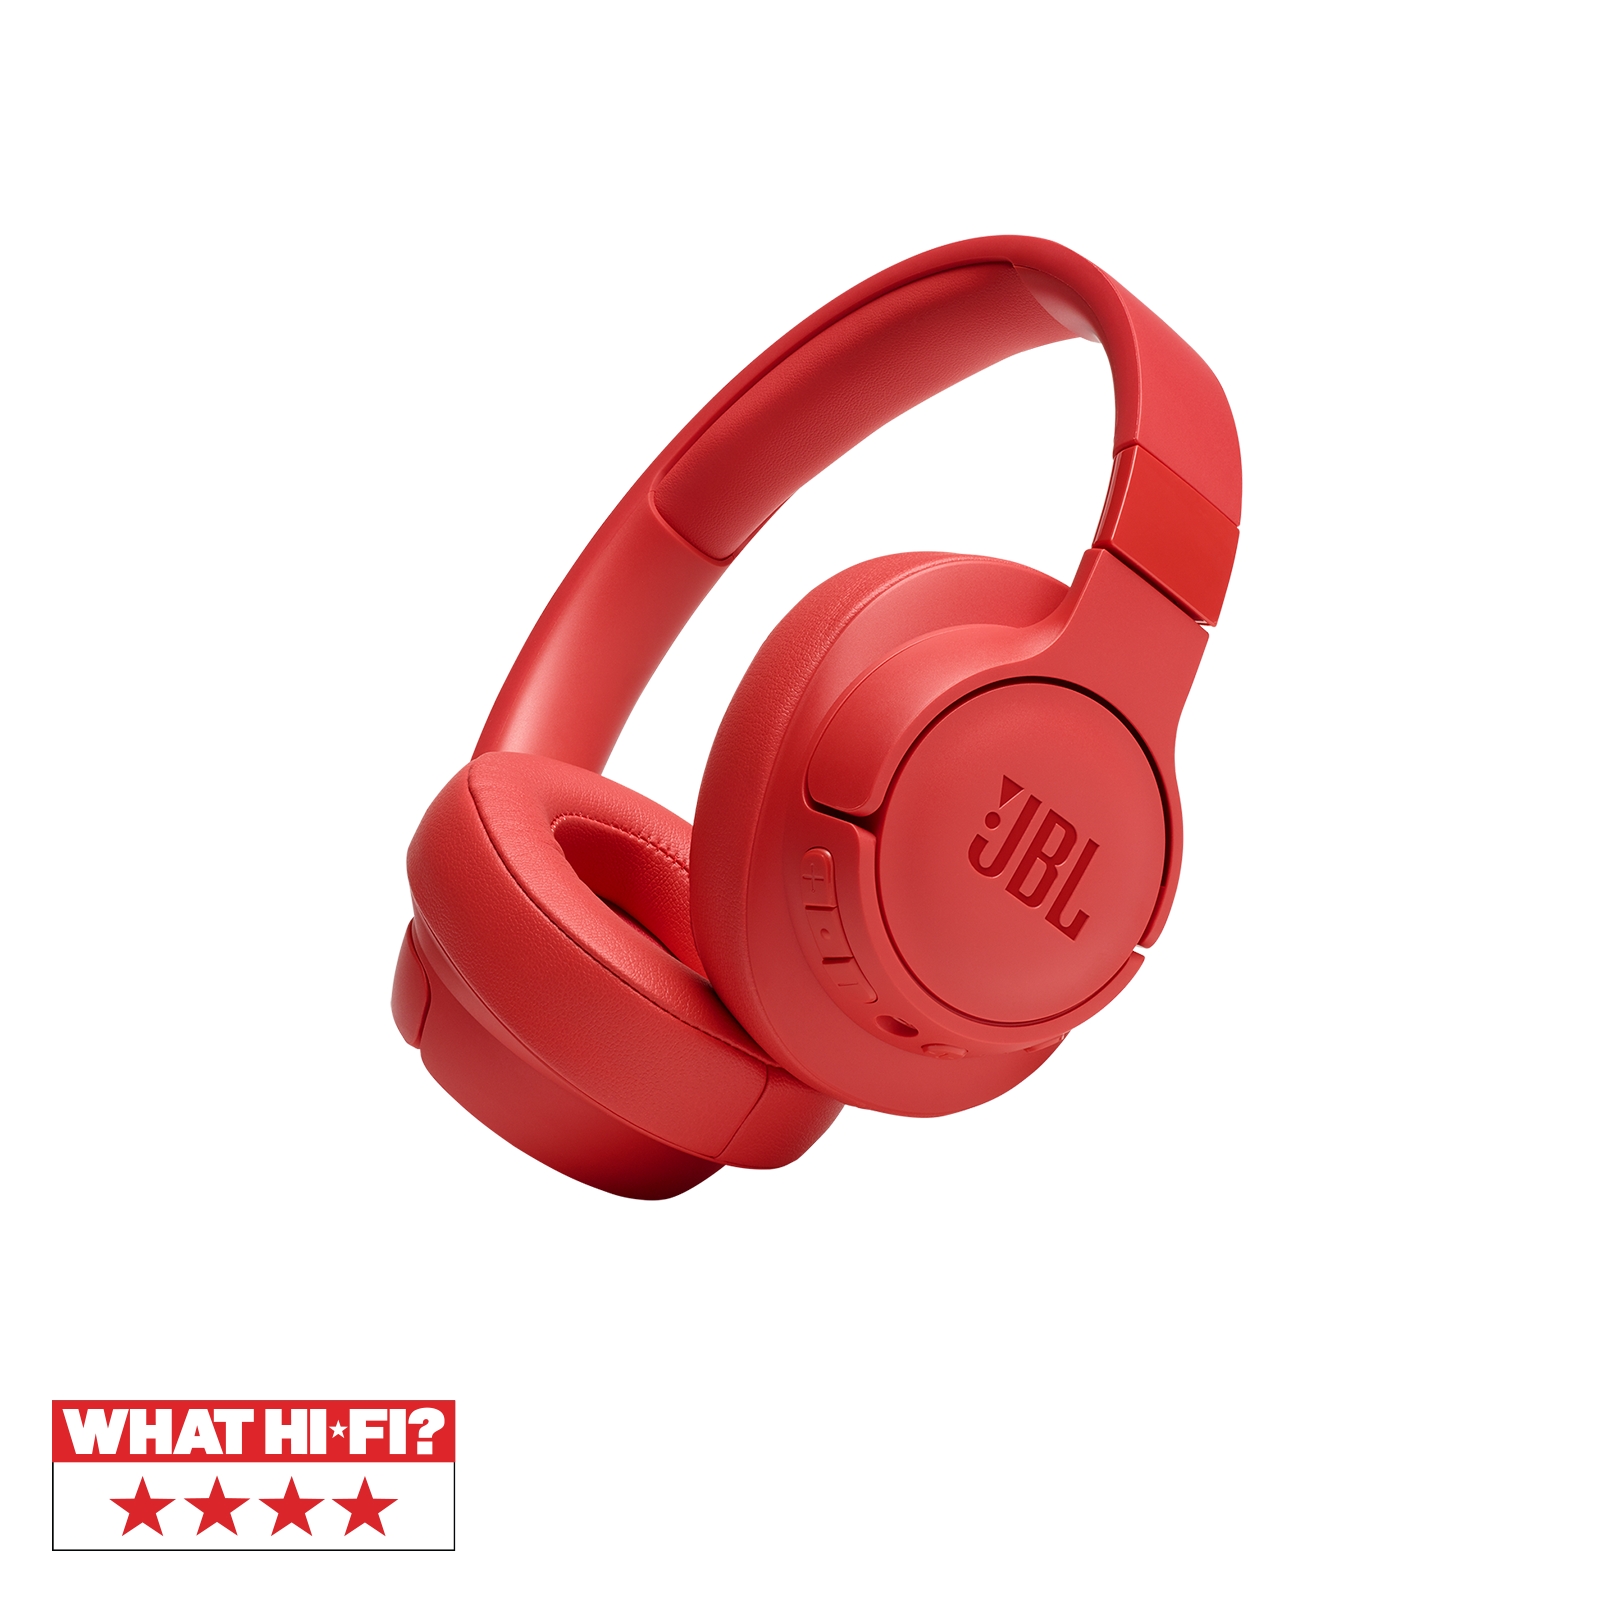 JBL TUNE 750BTNC - Coral Orange - Wireless Over-Ear ANC Headphones - Hero